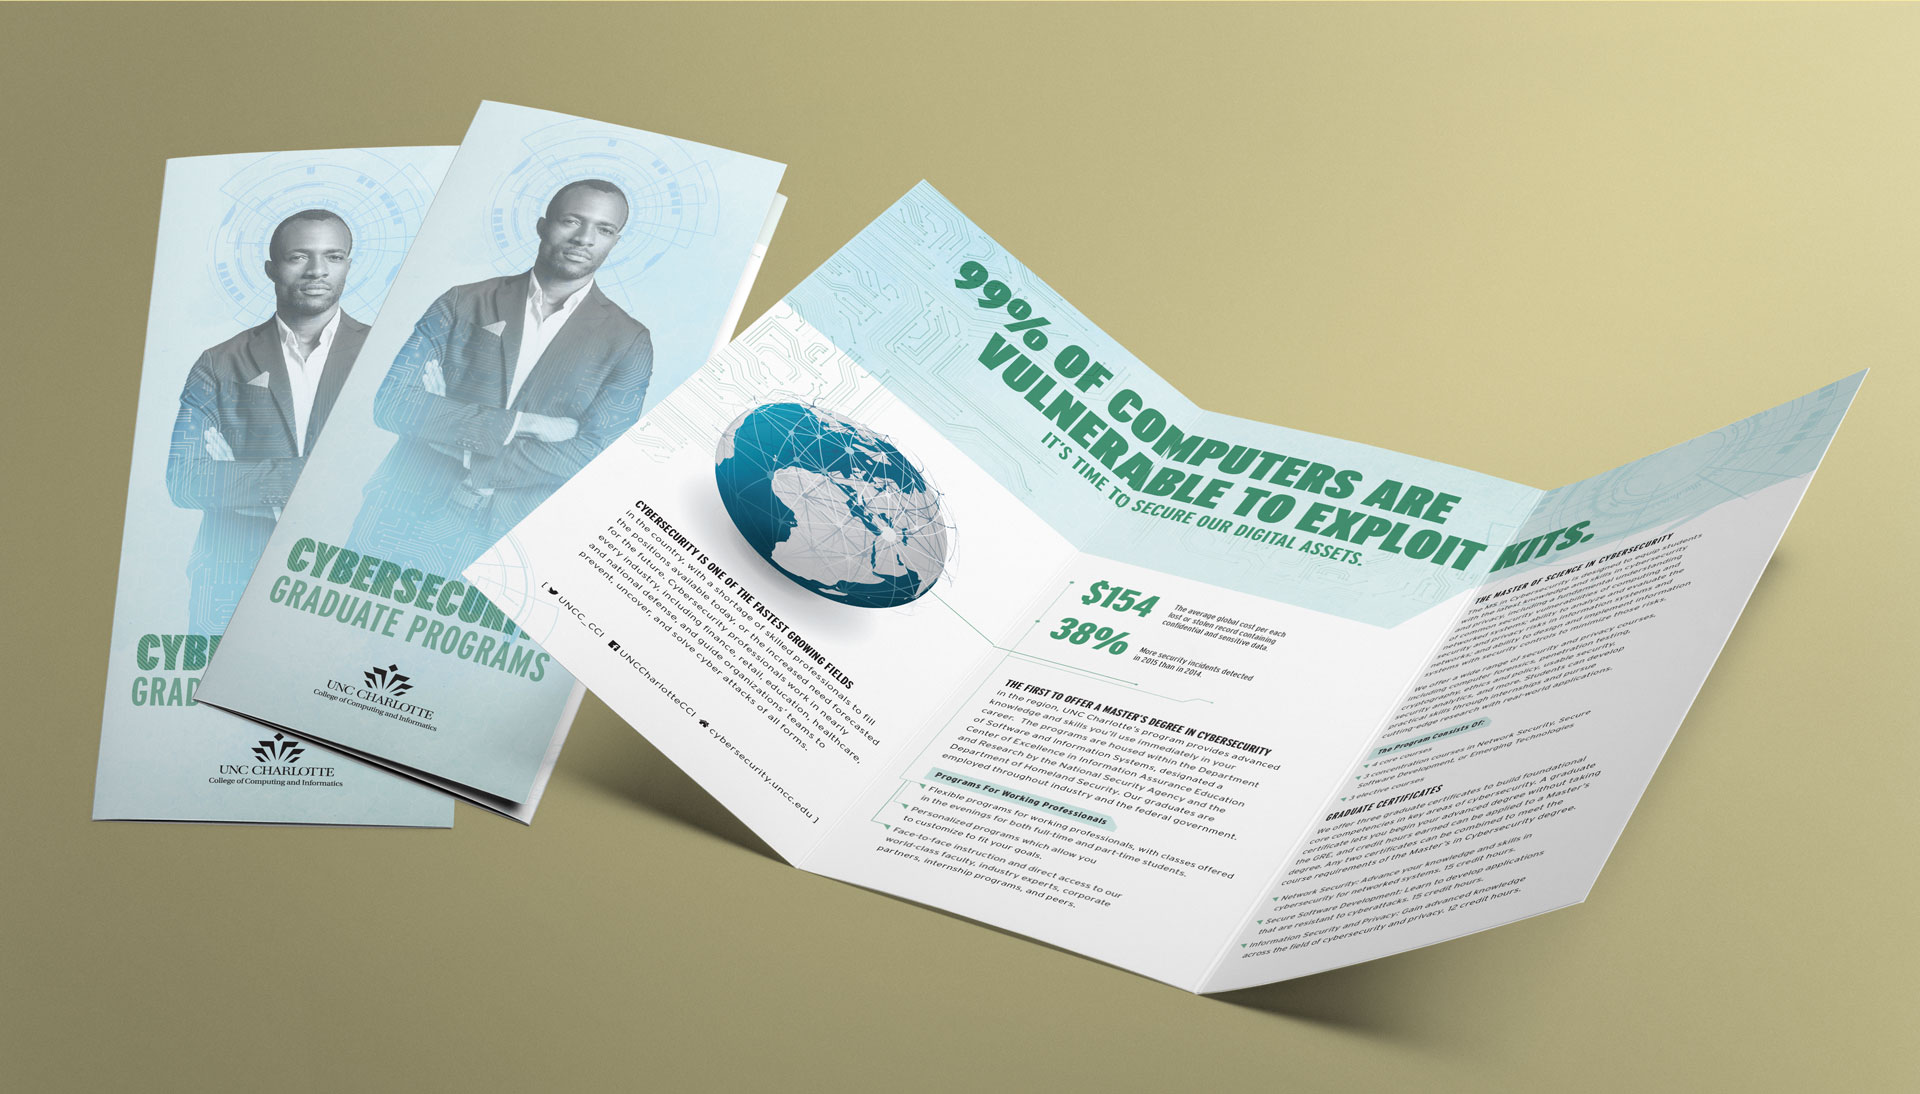 UNC Charlotte Cybersecurity Program Trifold Brochure